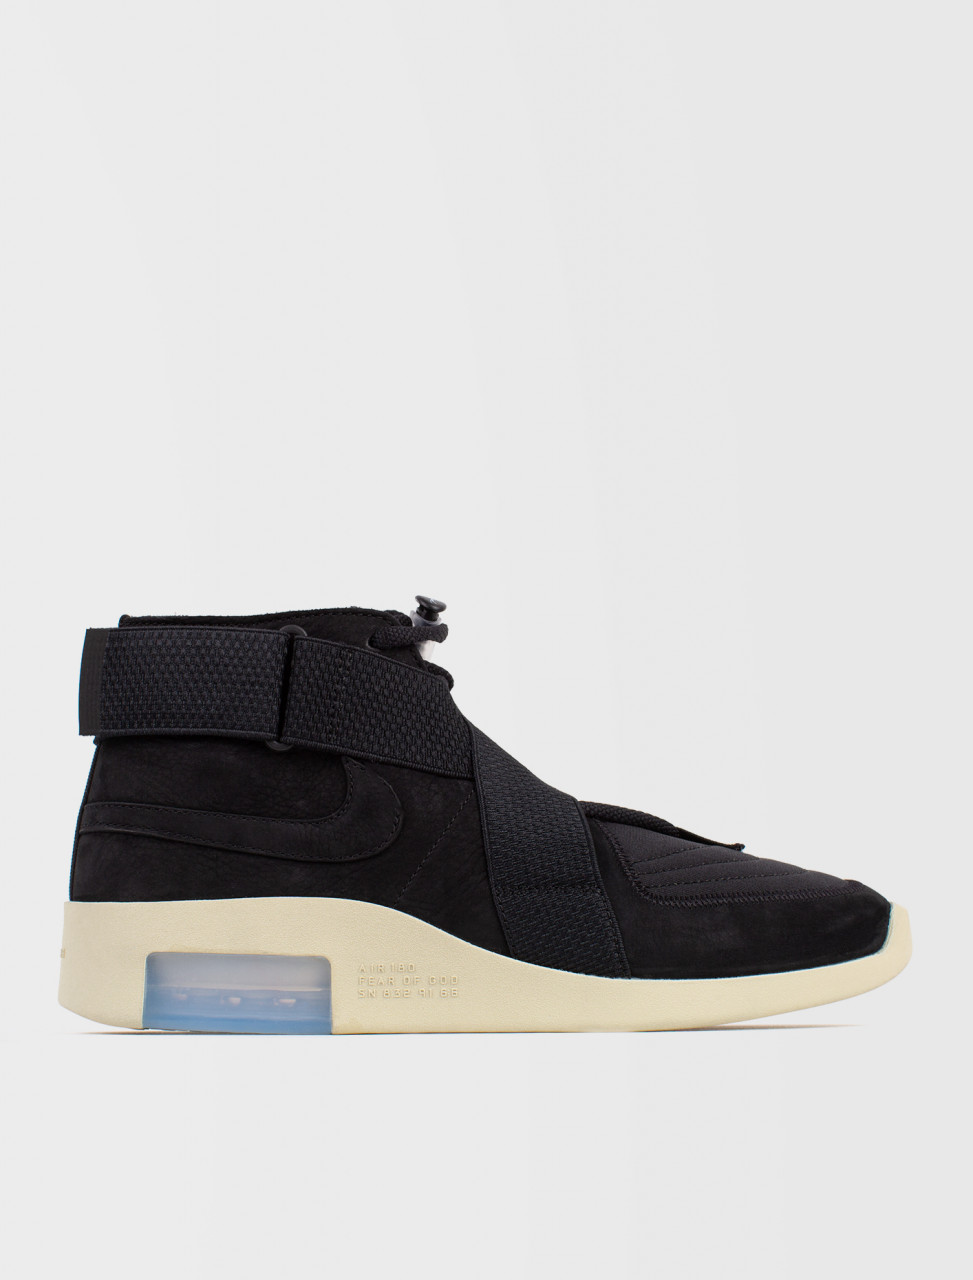 x Fear of God Raid Sneaker